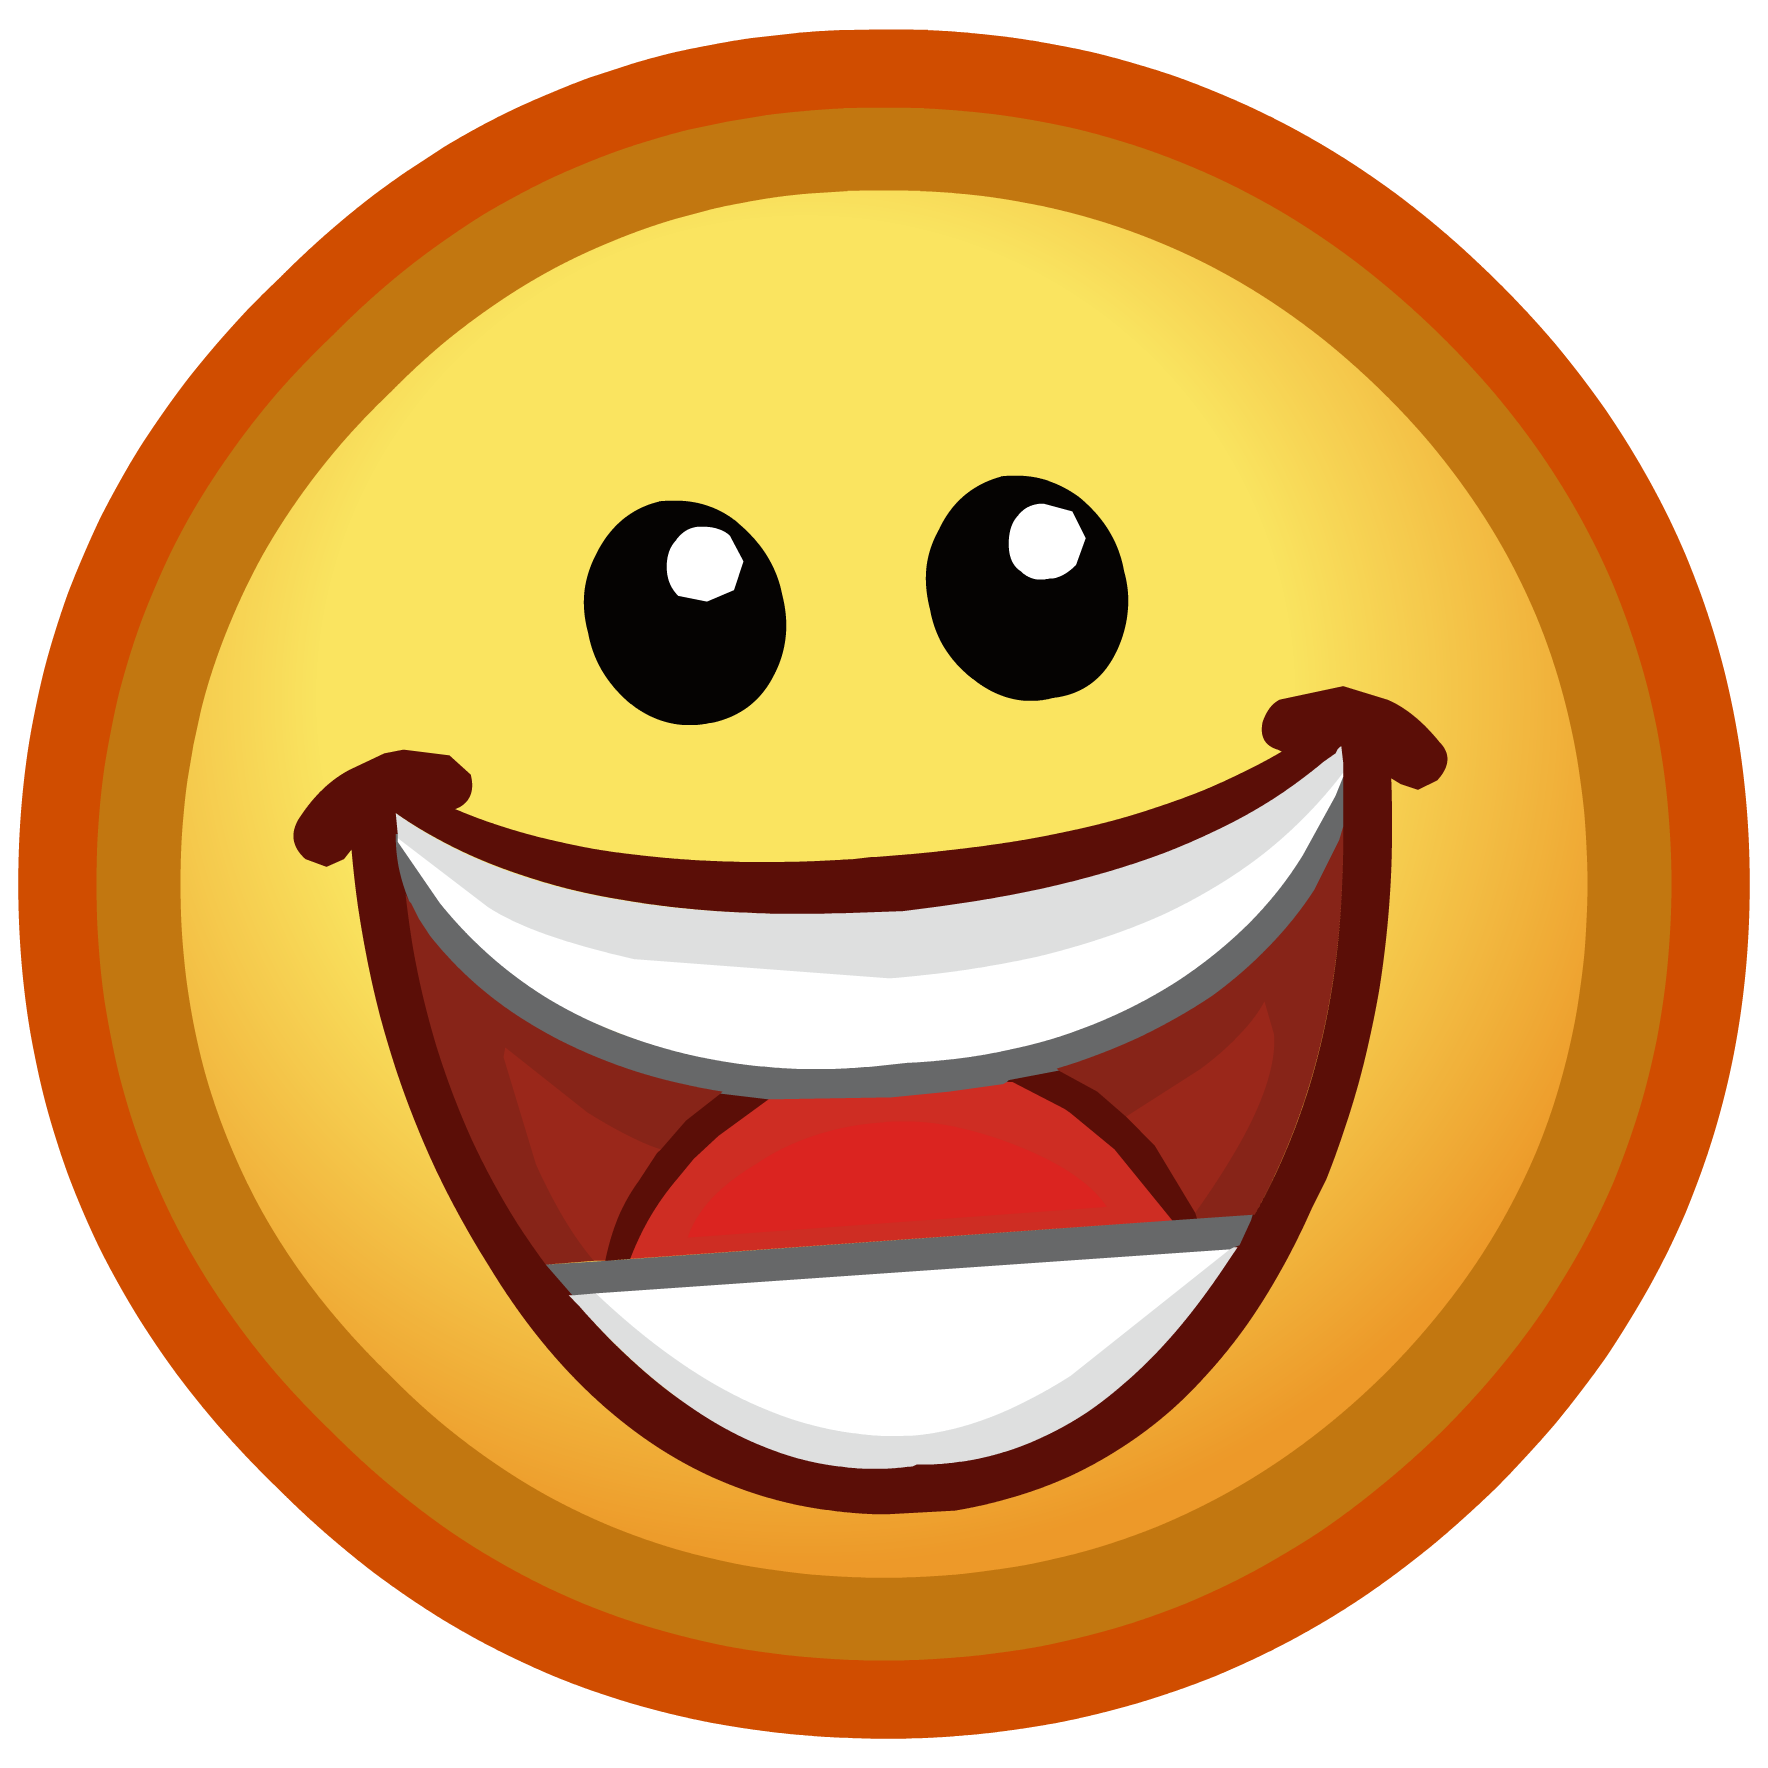 Image - Put on your happy face.png | Club Penguin Wiki ...